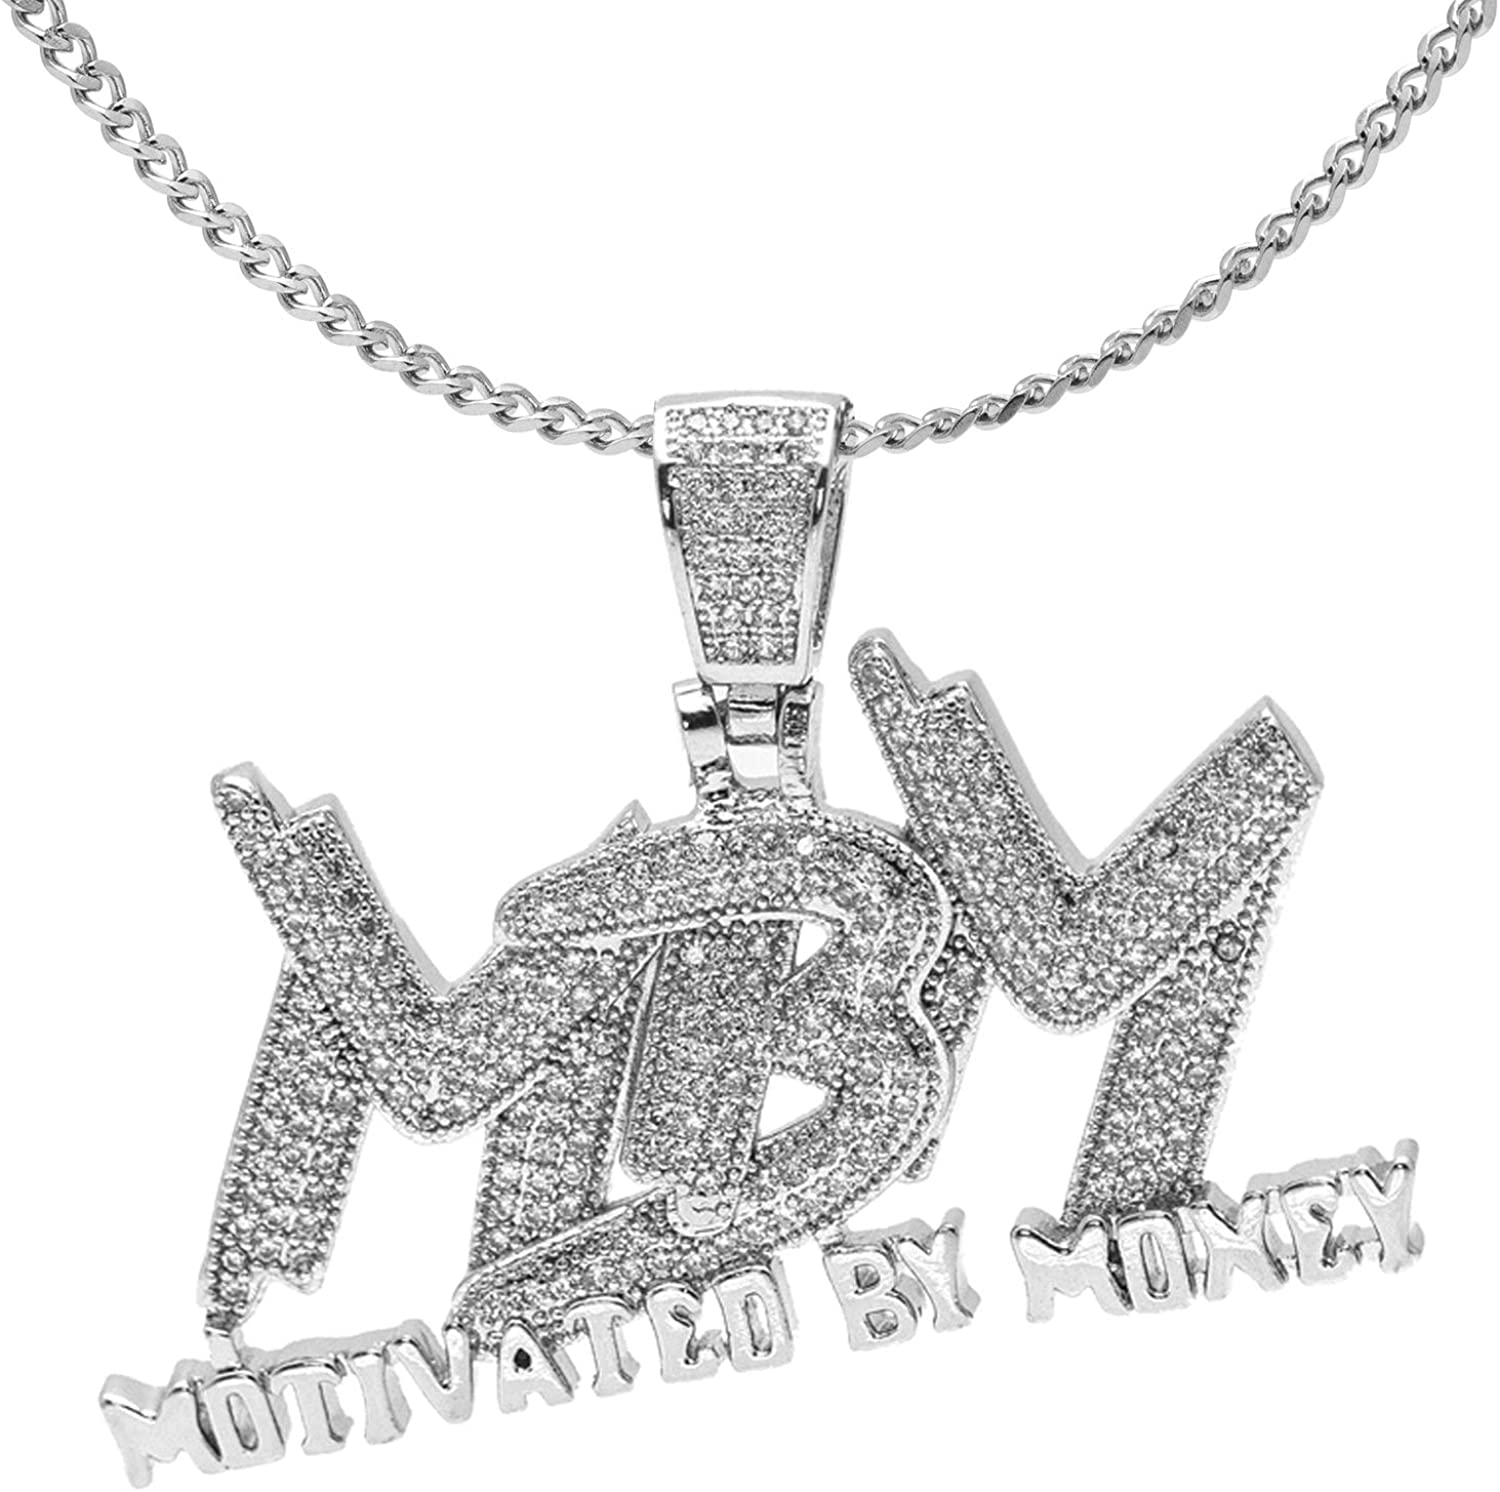 Nsitbbuery Hip Hop DJ Plated 18K Gold Ice Out Crystal Letter Tag Pendant Stainless Steel Chain Necklace